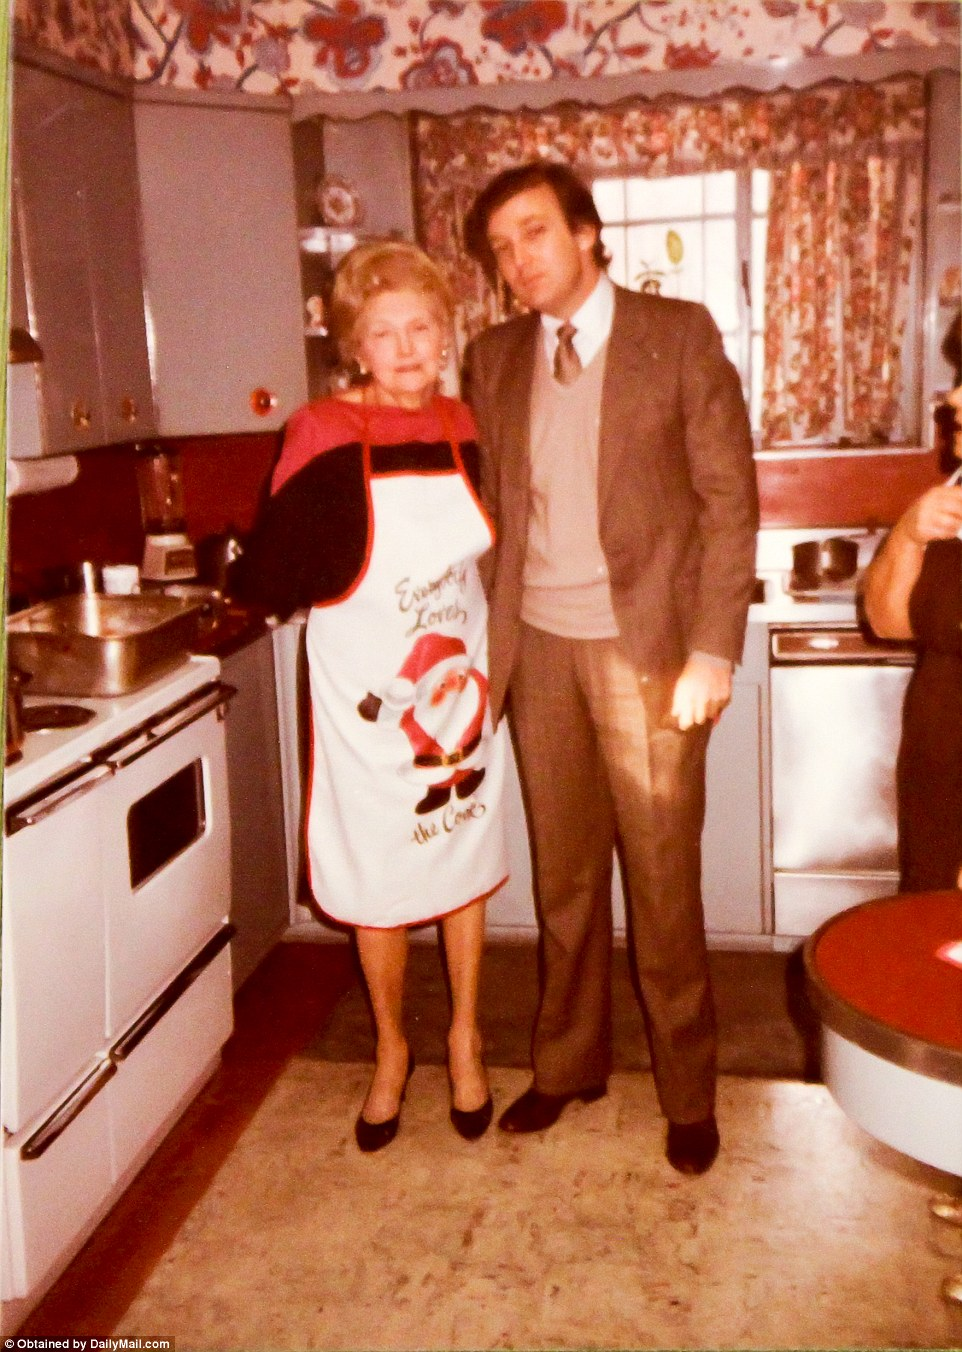 Donald with his mother Mary Trump at her humble abode during Christmas